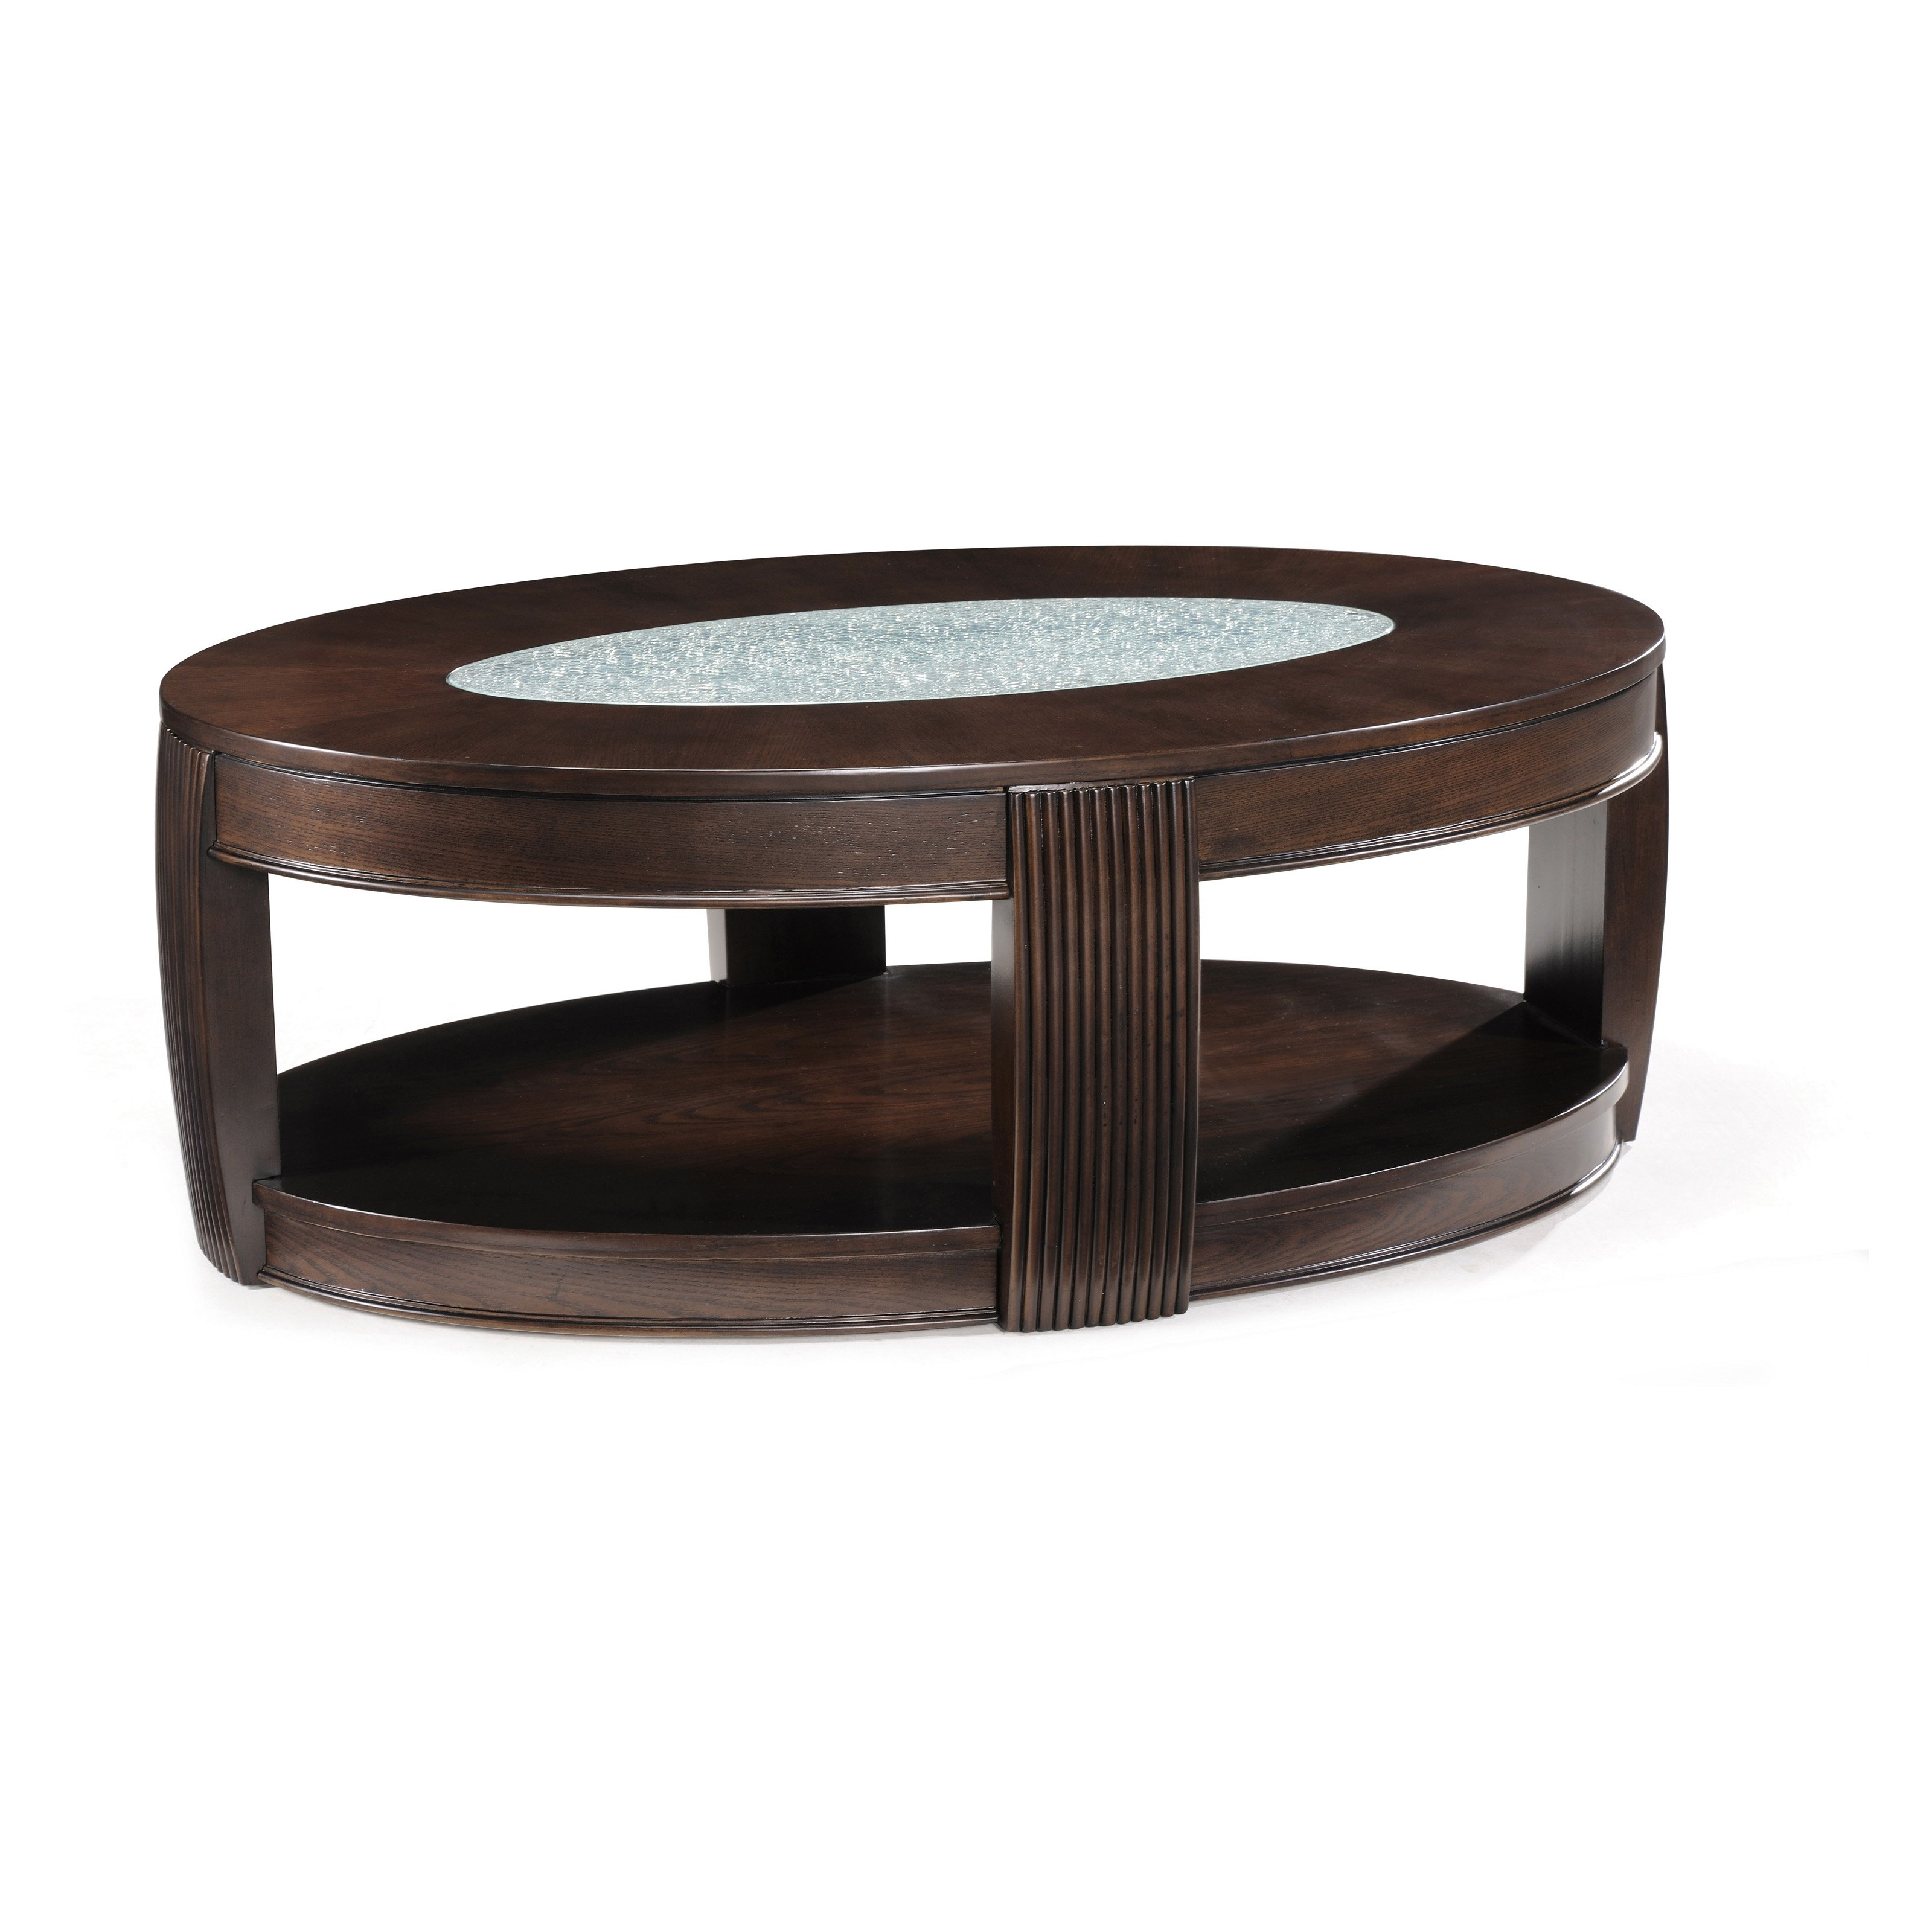 small glass top end tables free size round table low accent stained pendant light marble nightstand bar dining chairs piece coffee set asian lamps frosted unfinished wood cabinets